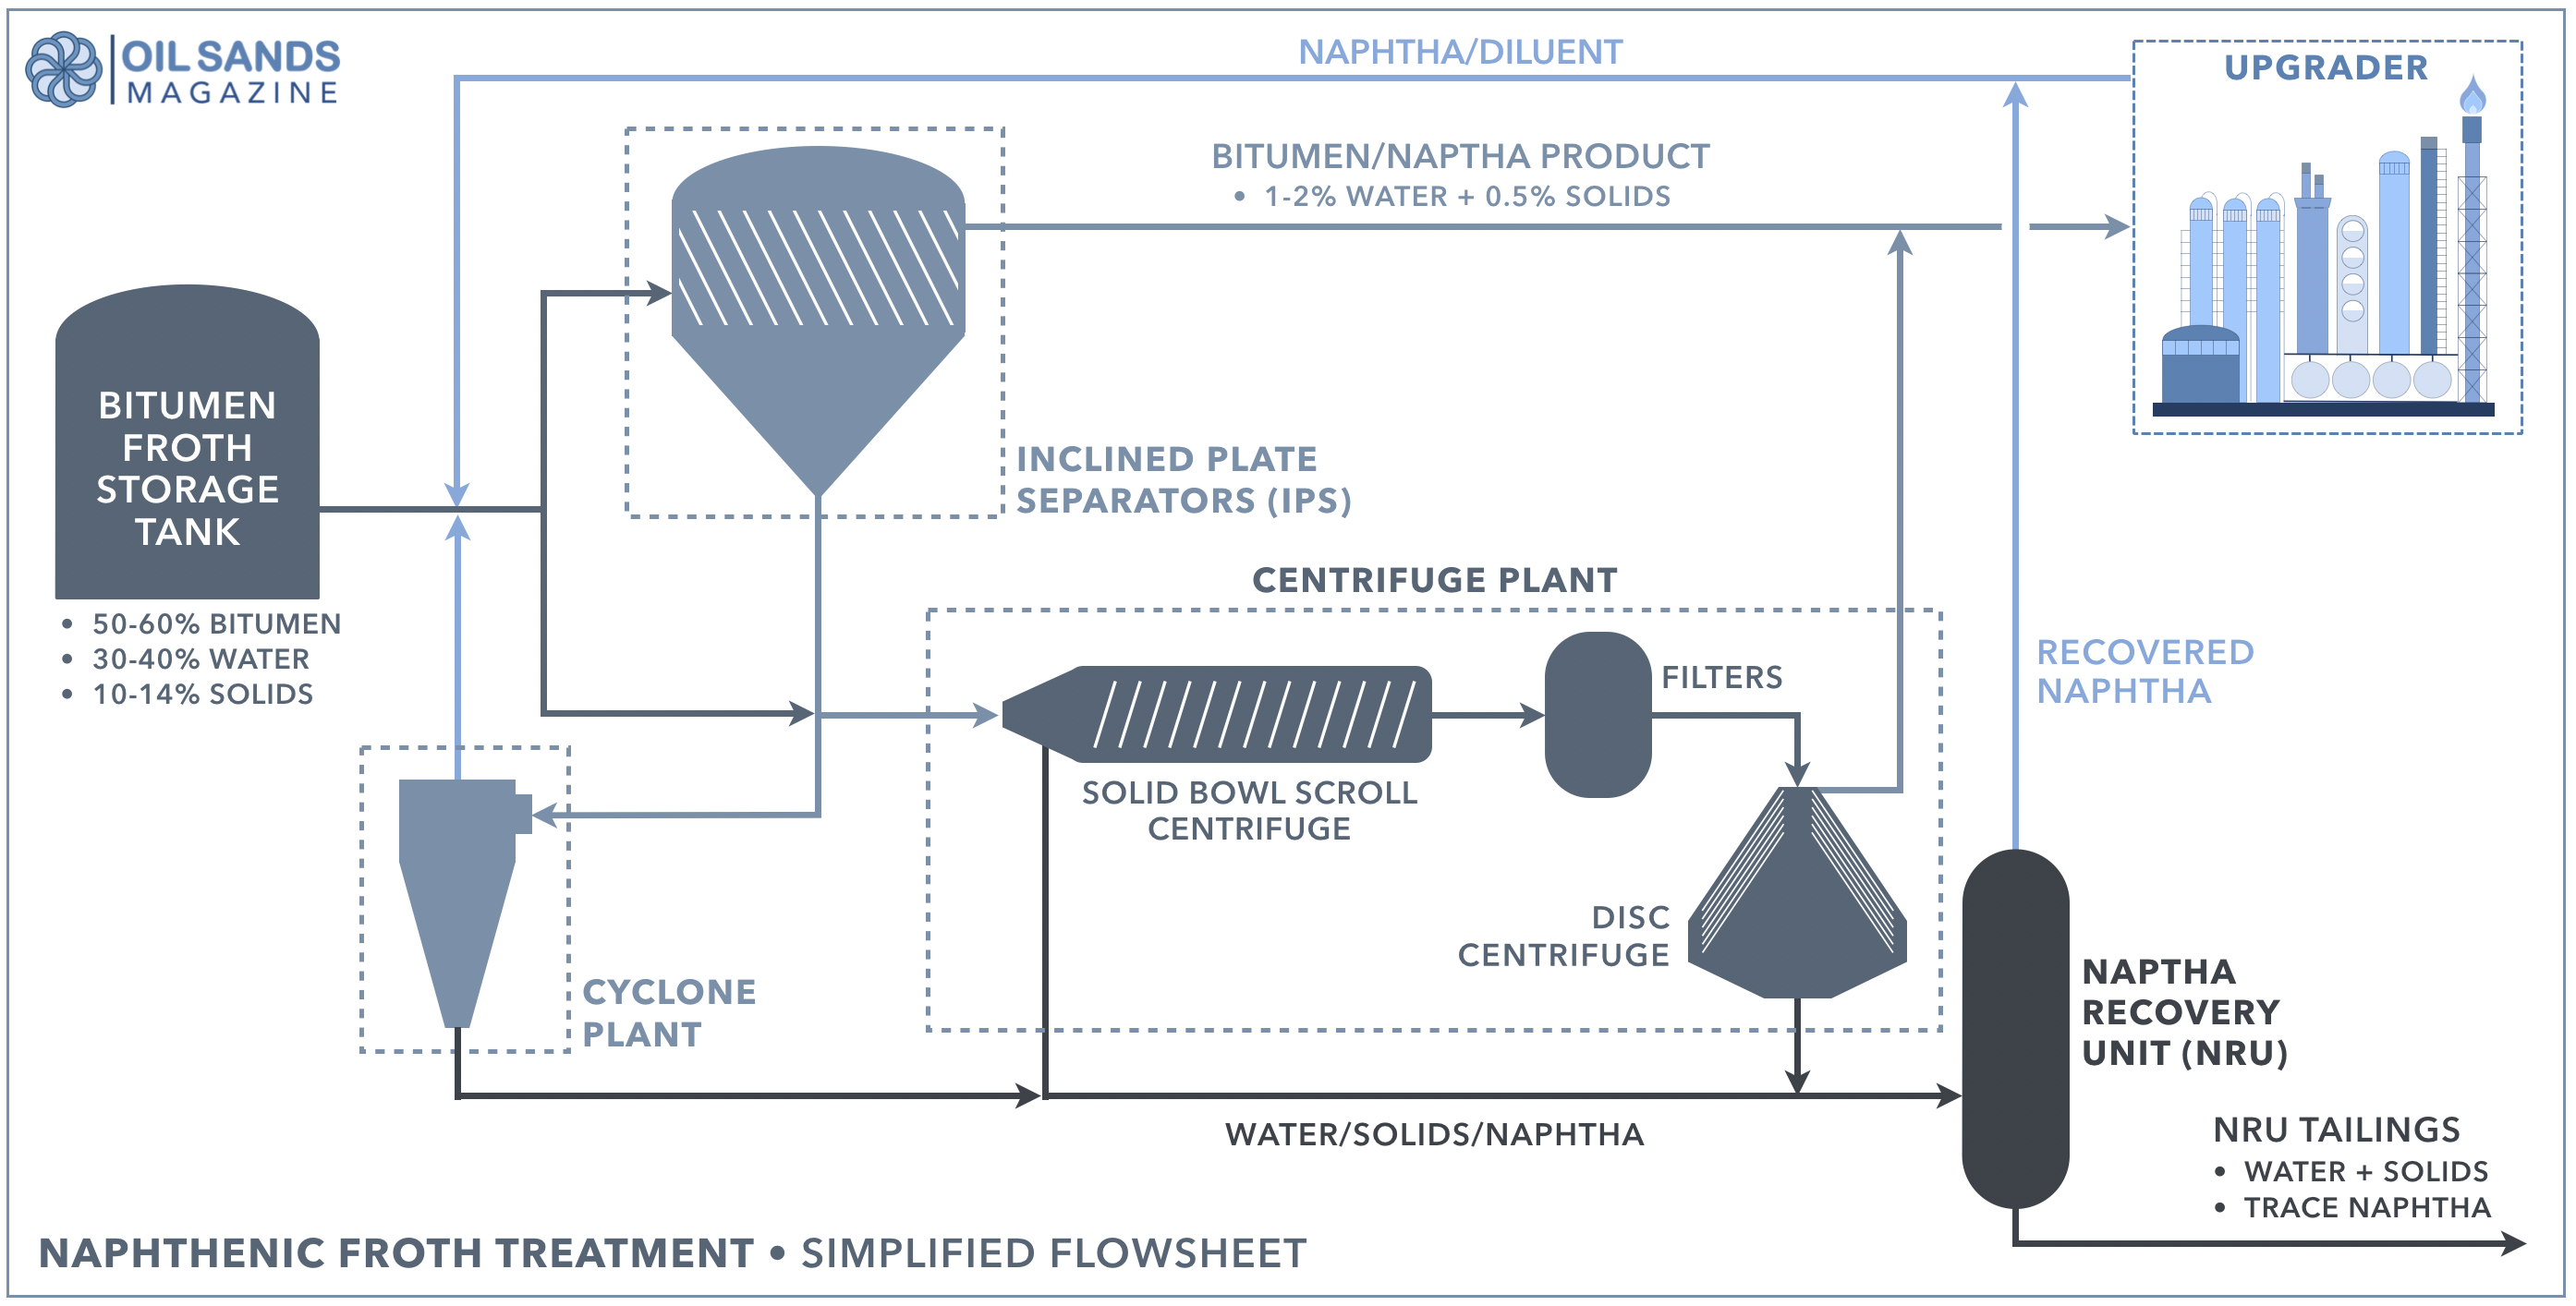 Naphthenic froth treatment oil sands magazine efficiency due to the lower viscosities observed at the higher temperatures operating at 100c or higher has not been shown to benefit the process nvjuhfo Images